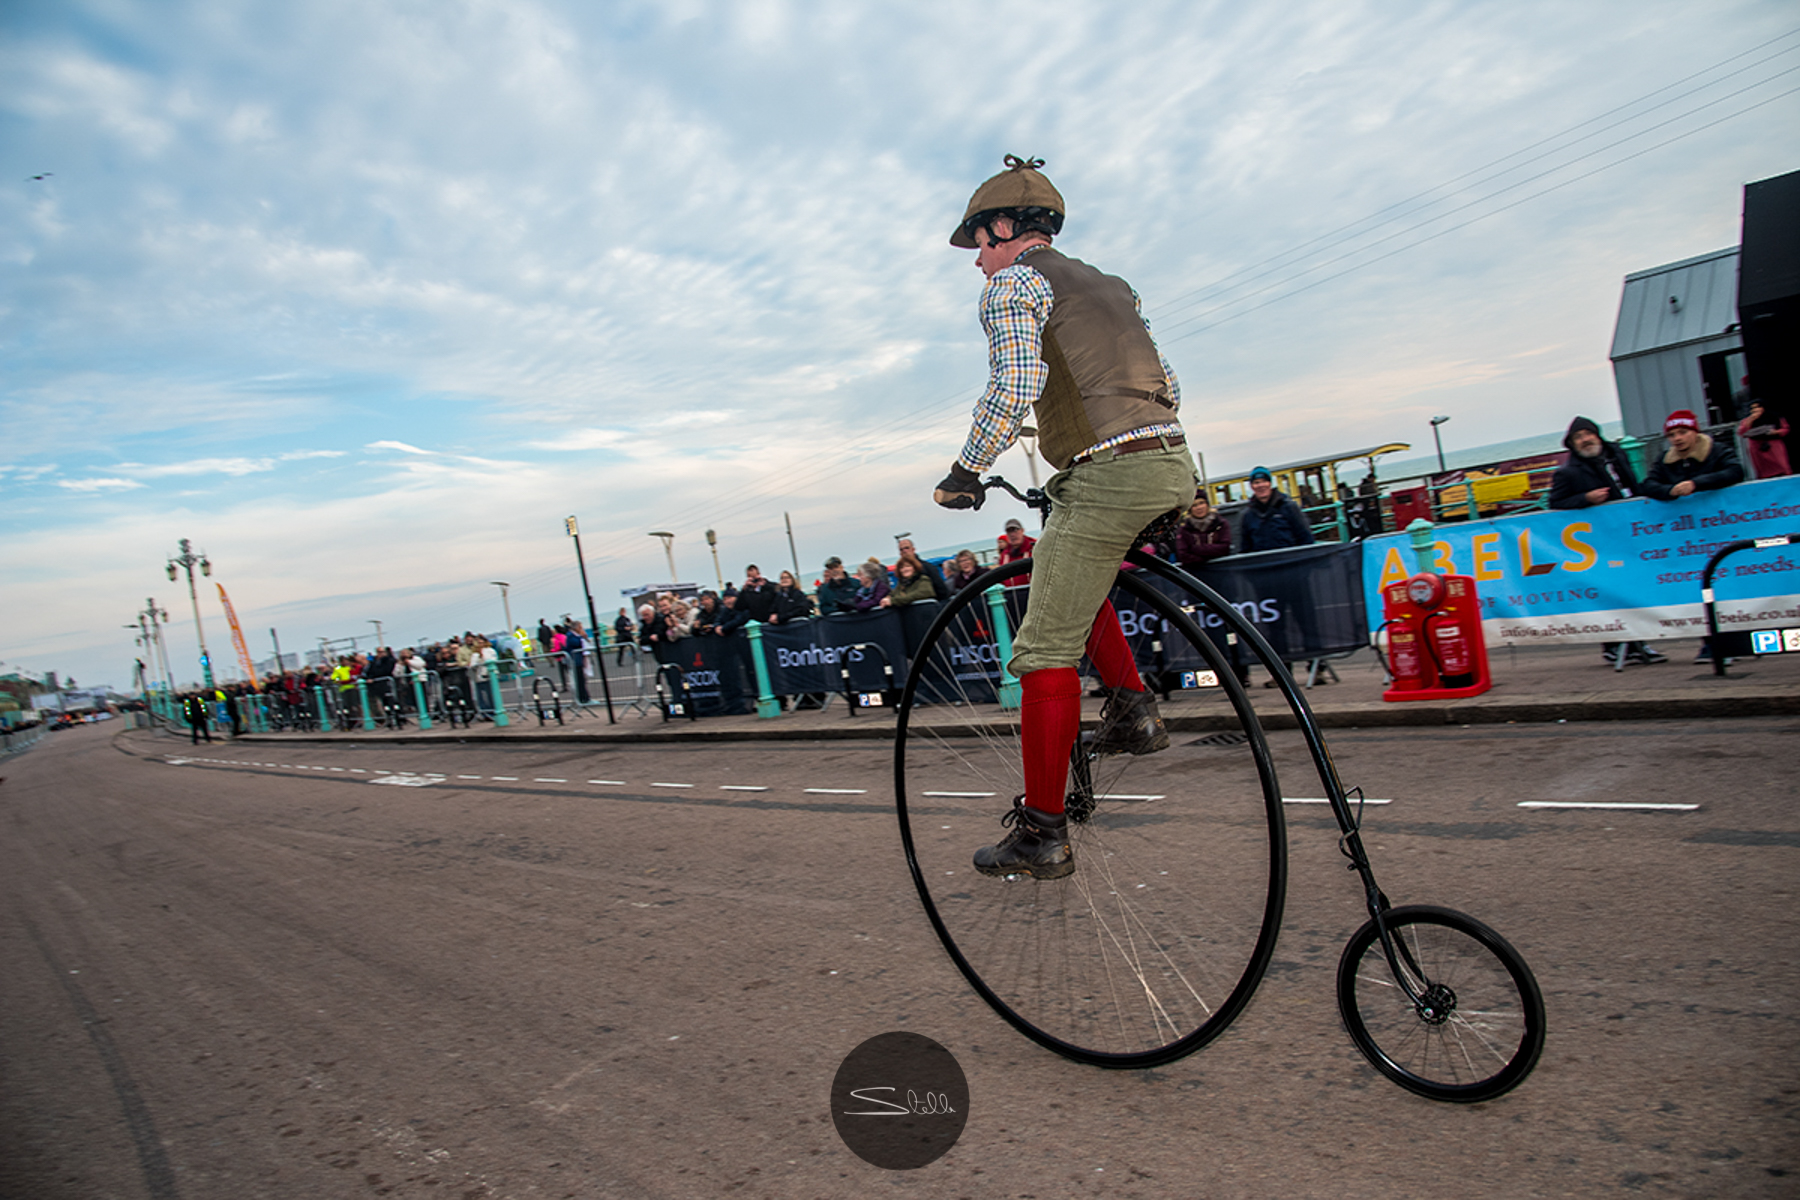 A wonderful Penny Farthing made the journey from London to Brighton.